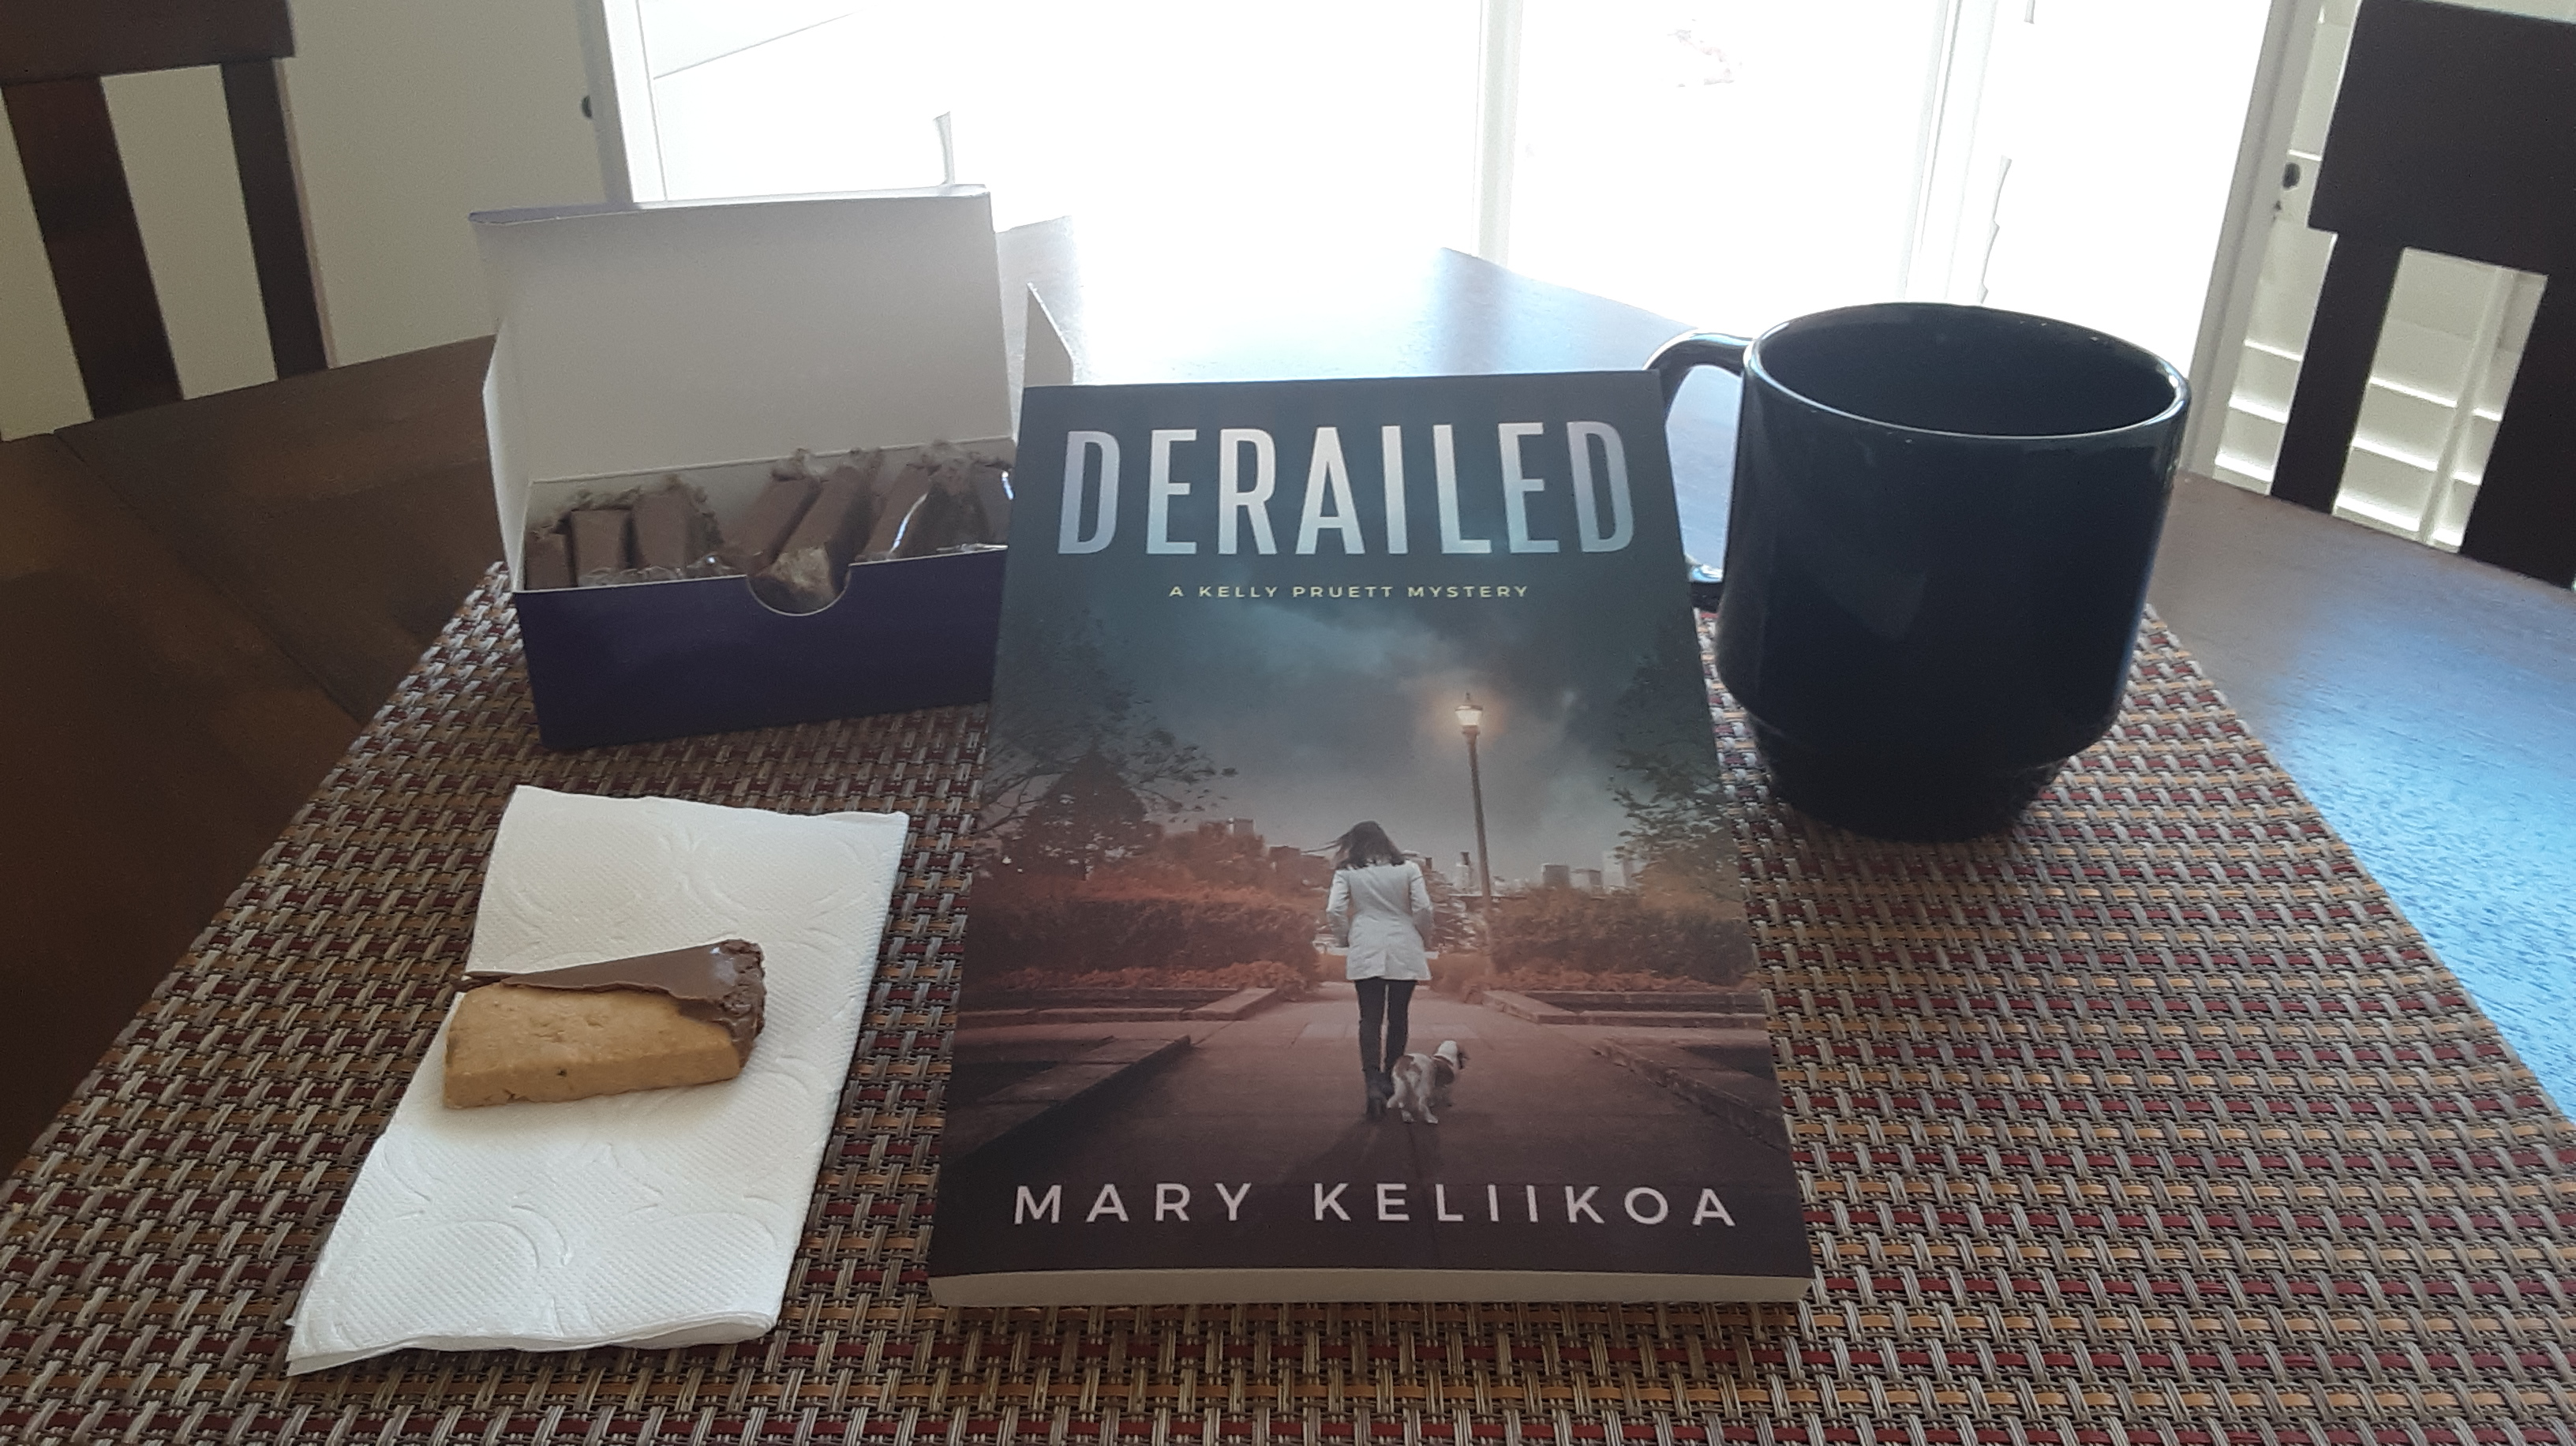 Coffee cookies and a good book